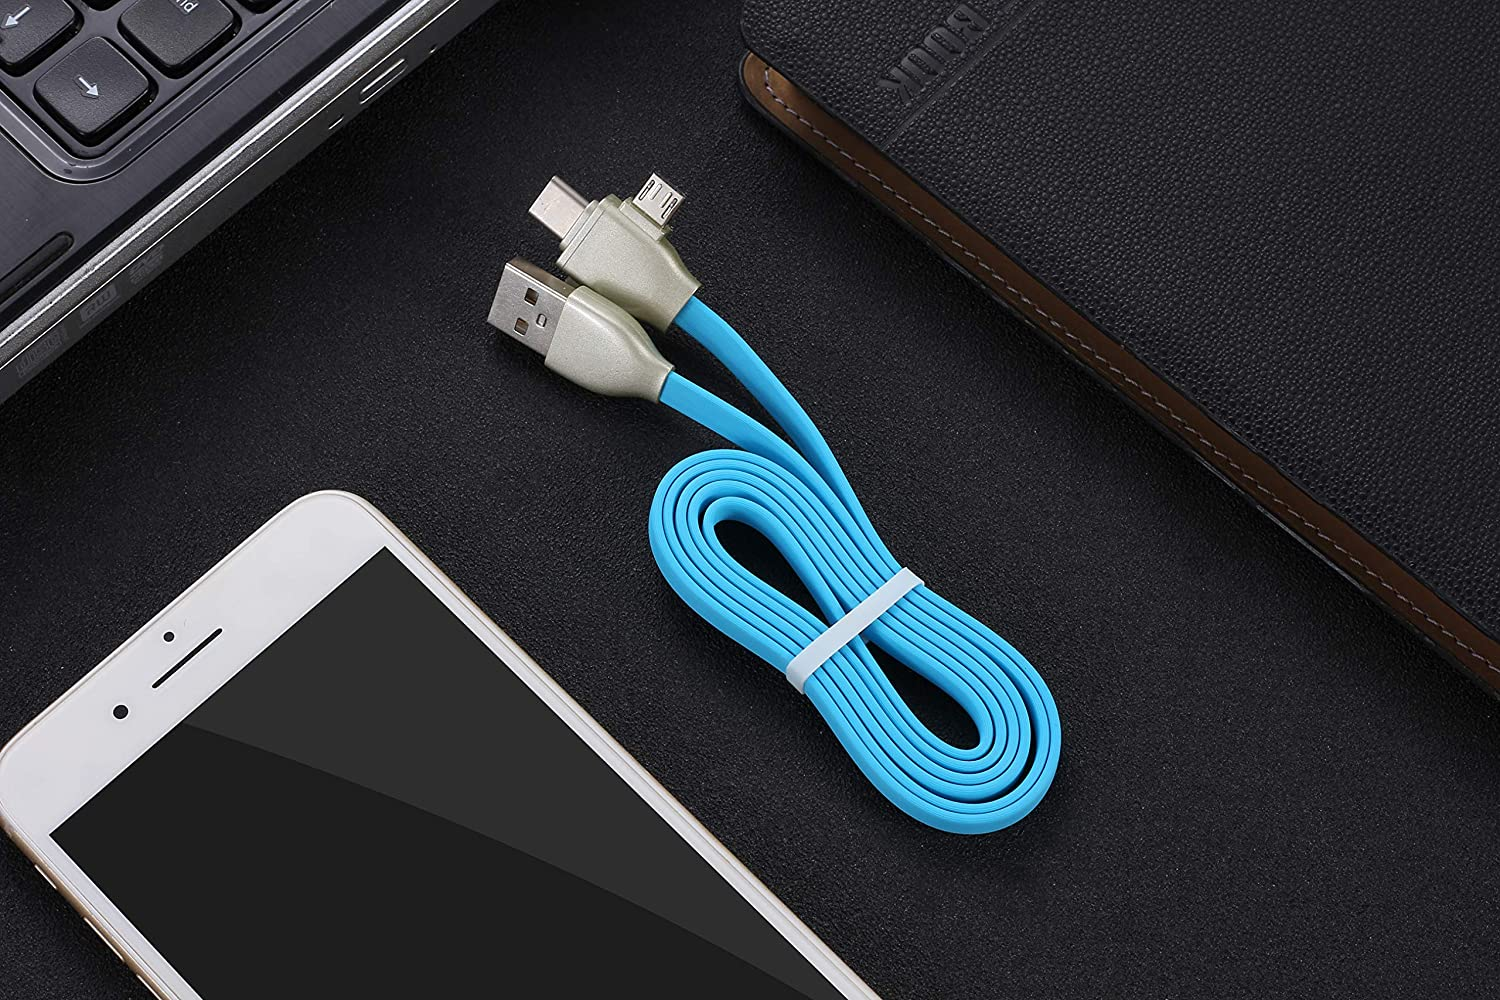 USB Cable 4FT 3in1 Charging Cable USB to MicroUSB//Type C 3 in 1